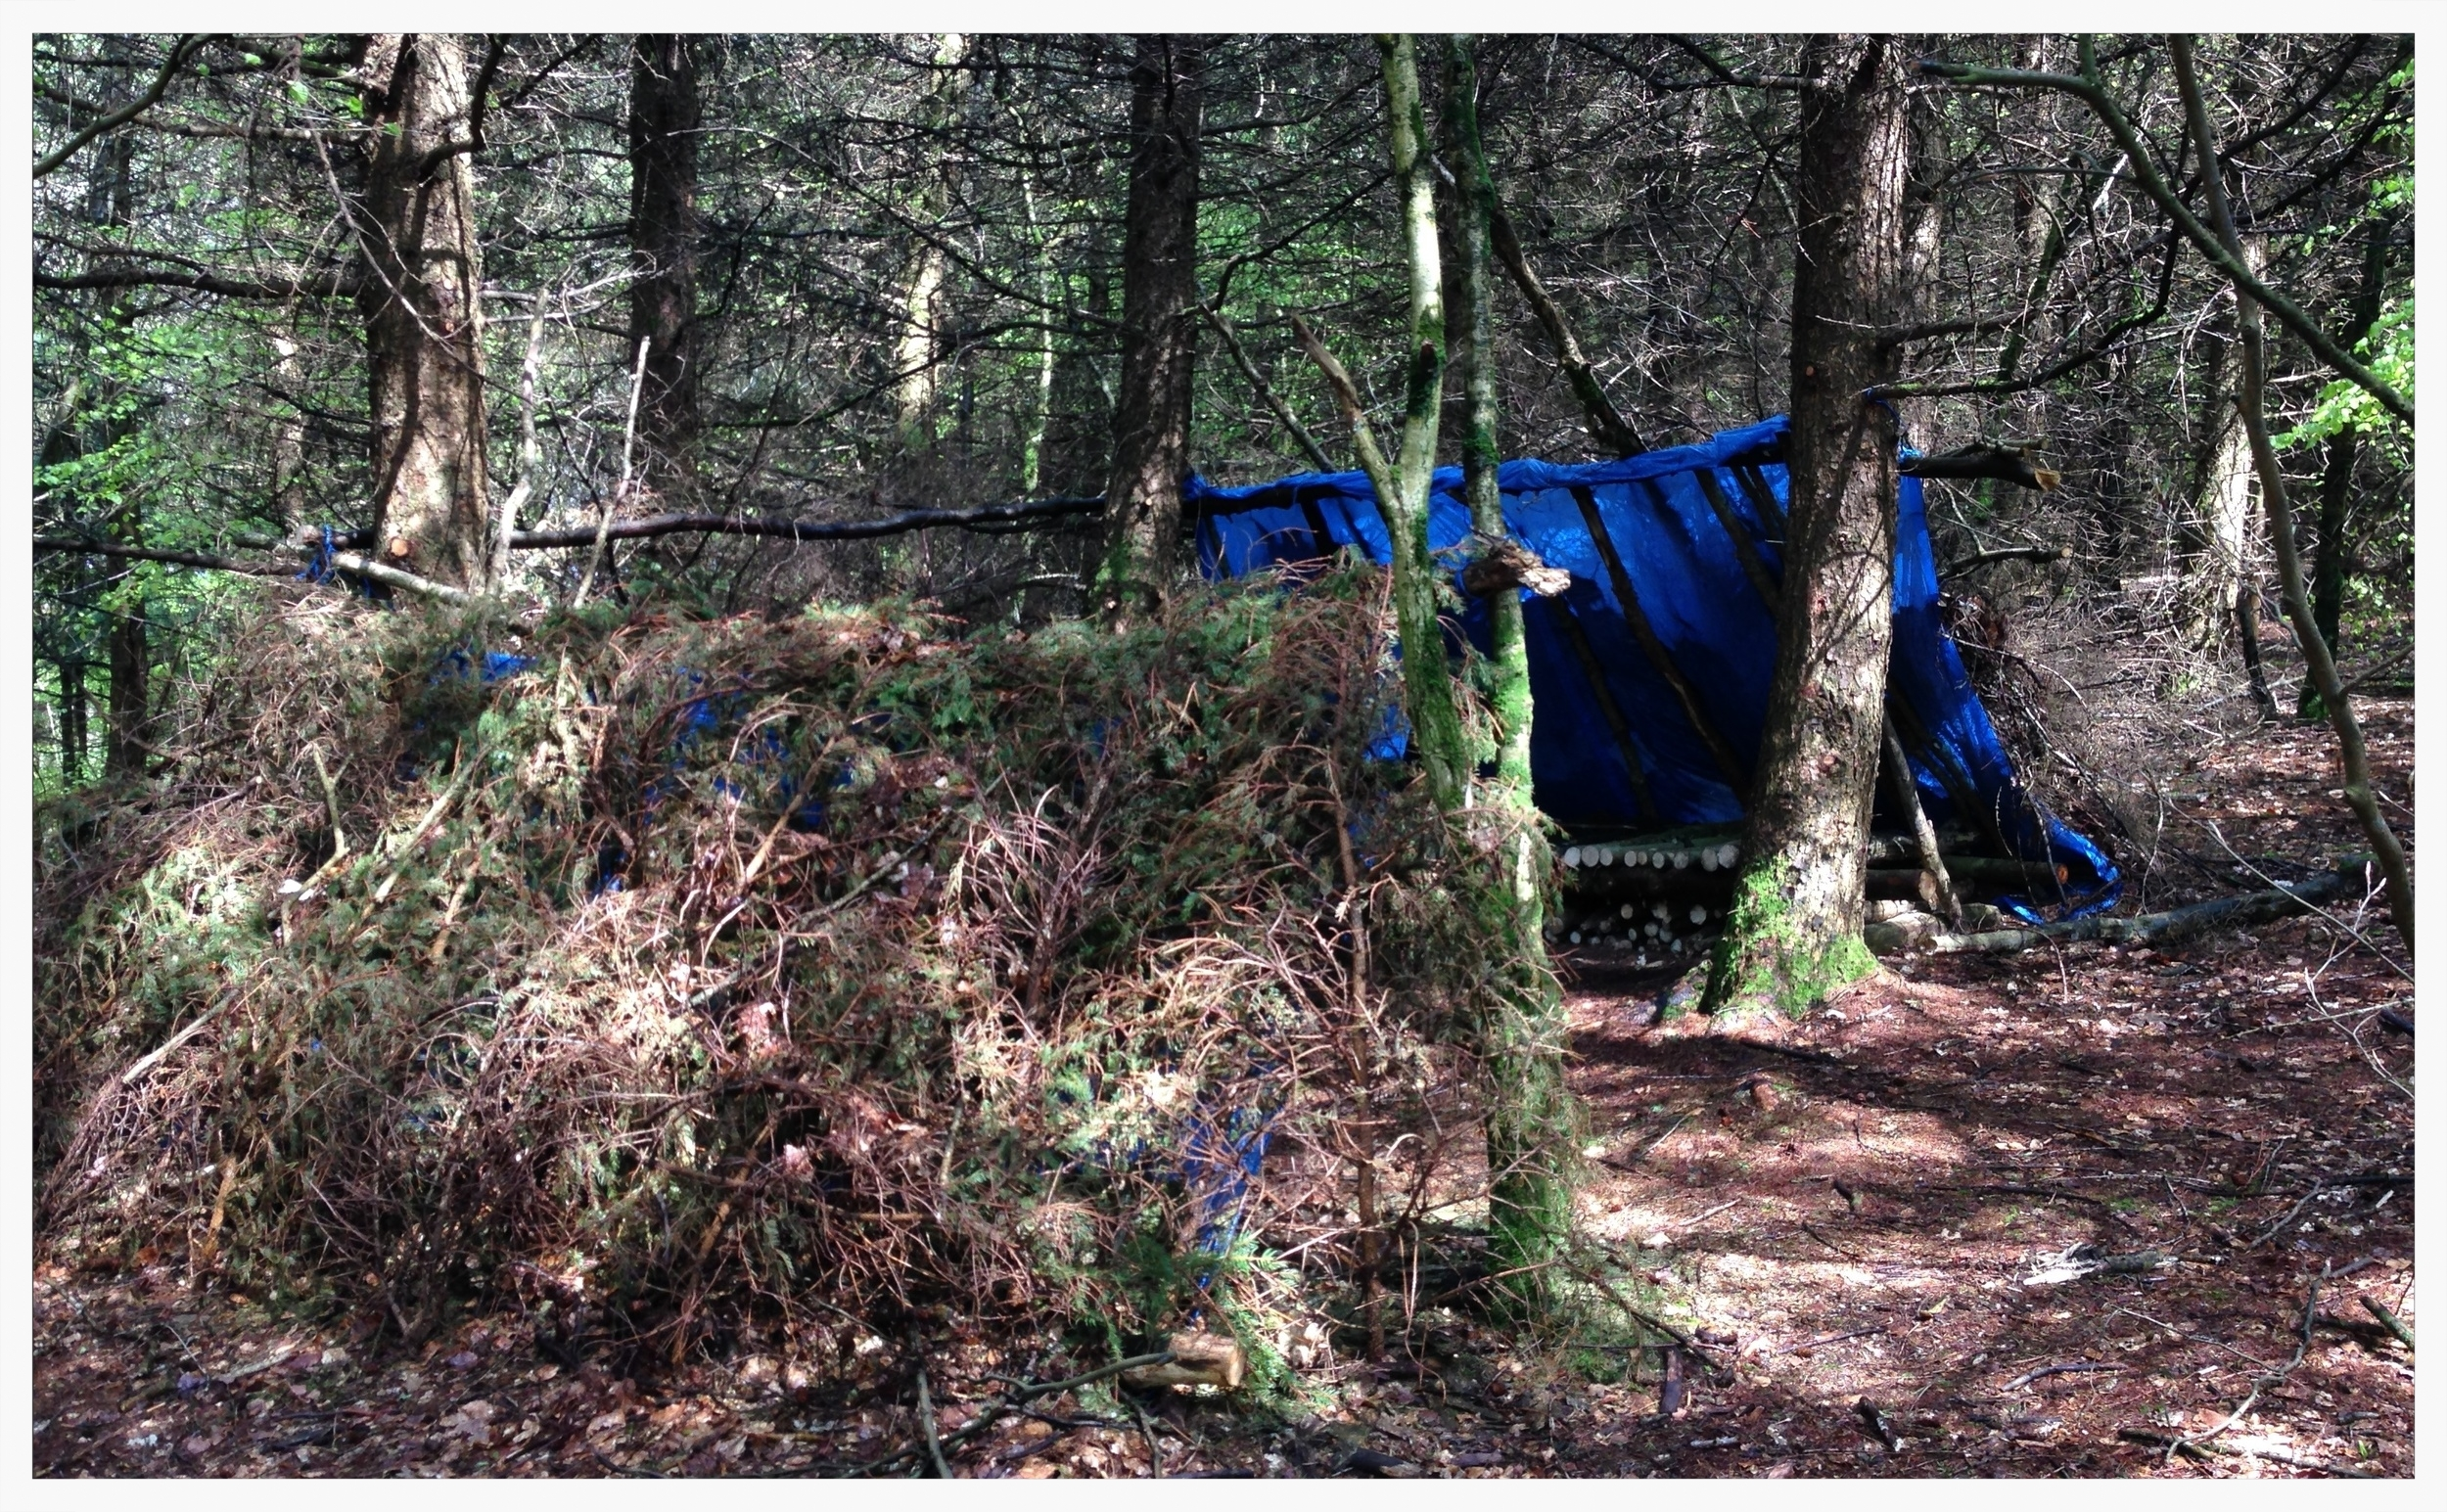 Someone had left this proper Ray Mears style camp behind!